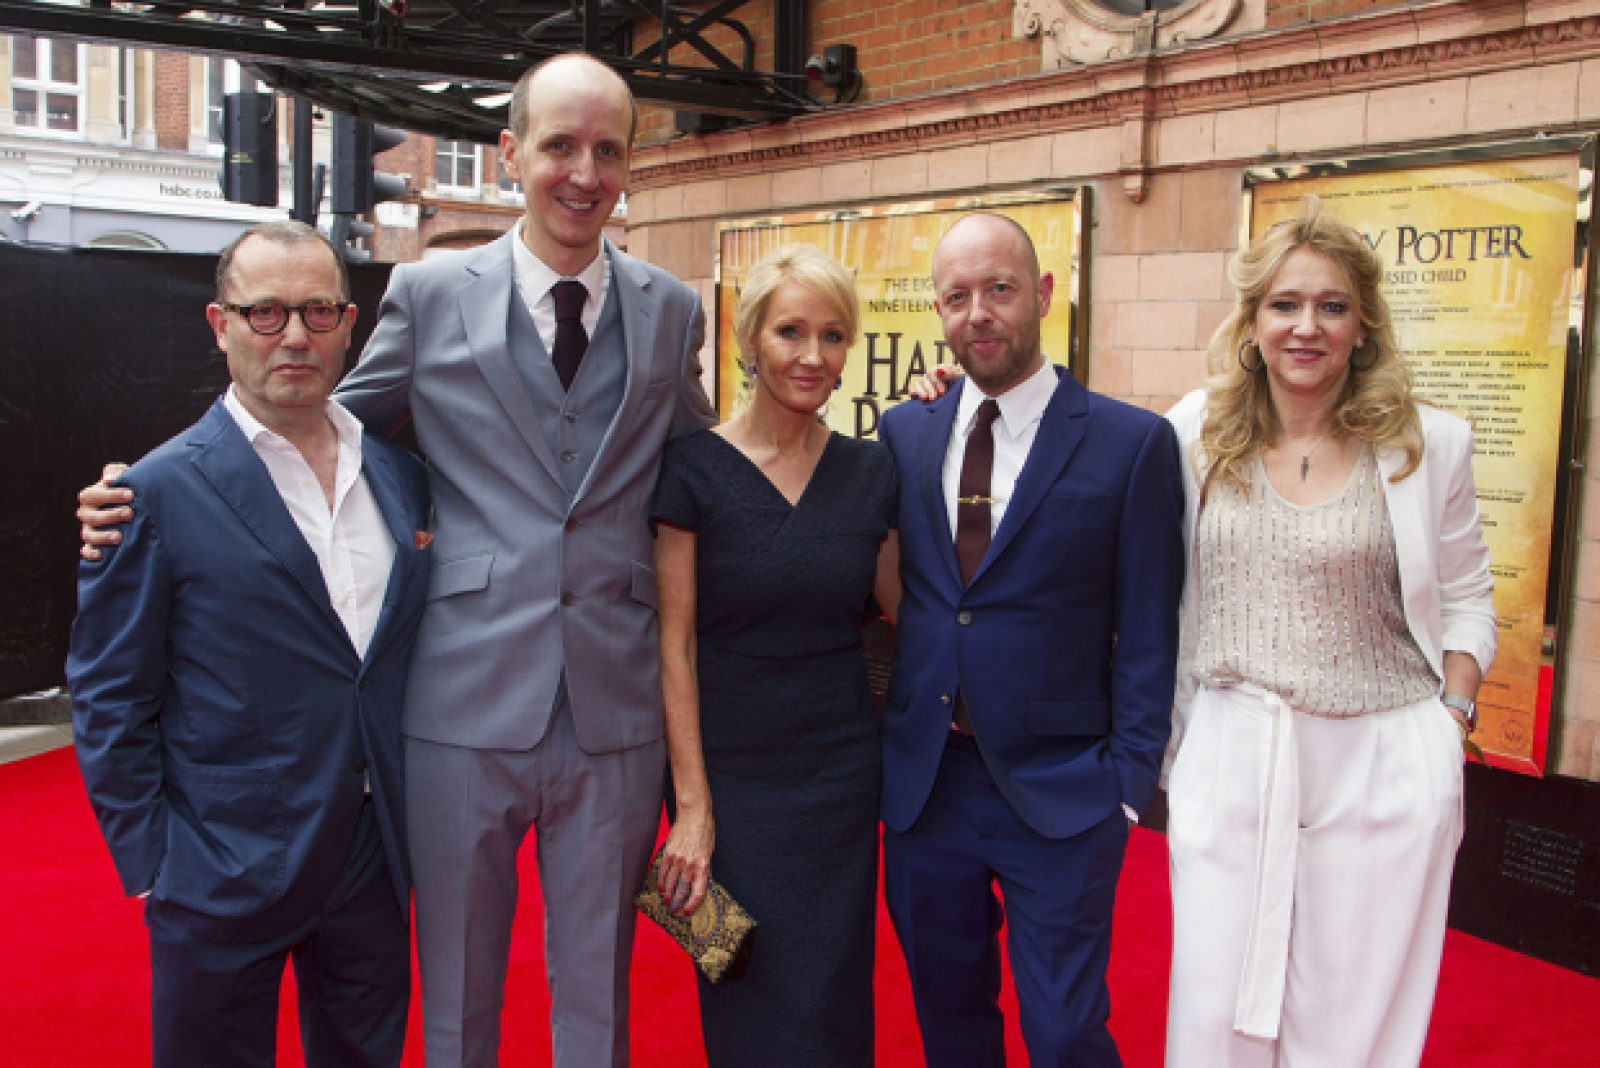 In Pictures Jk Rowling And More Arrive At Harry Potter And The